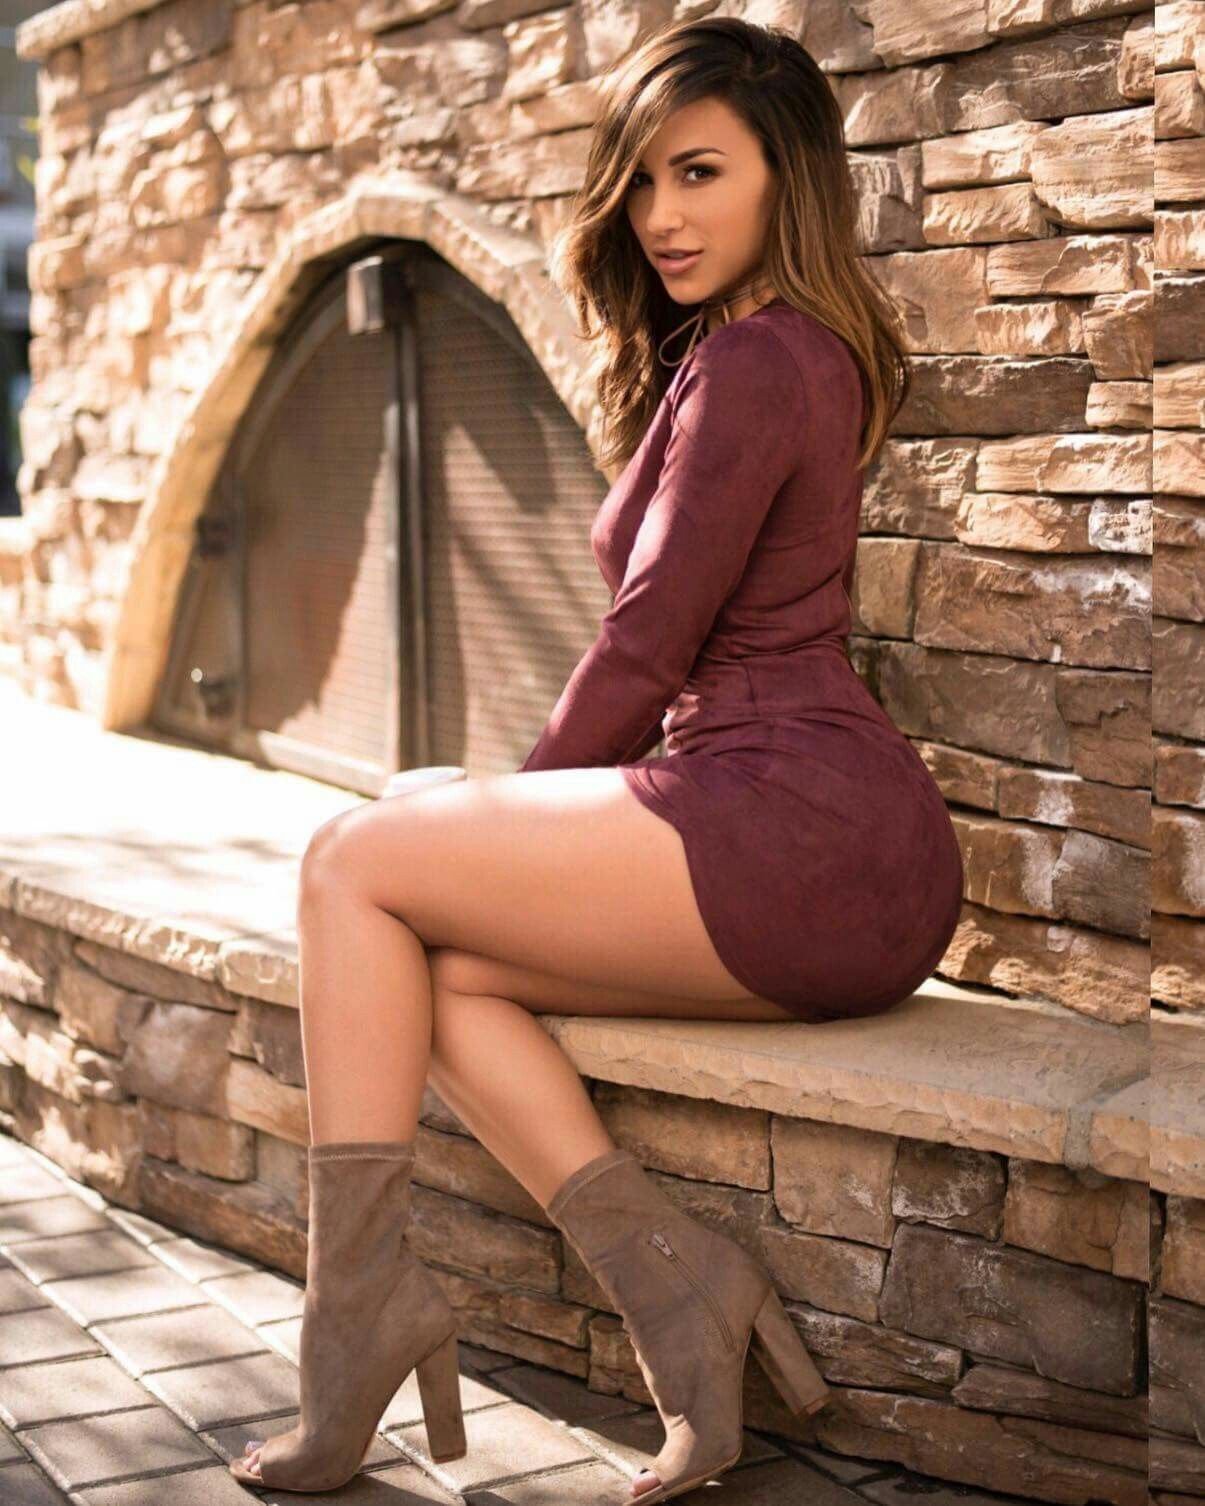 Explore mini skirts person sitting and more